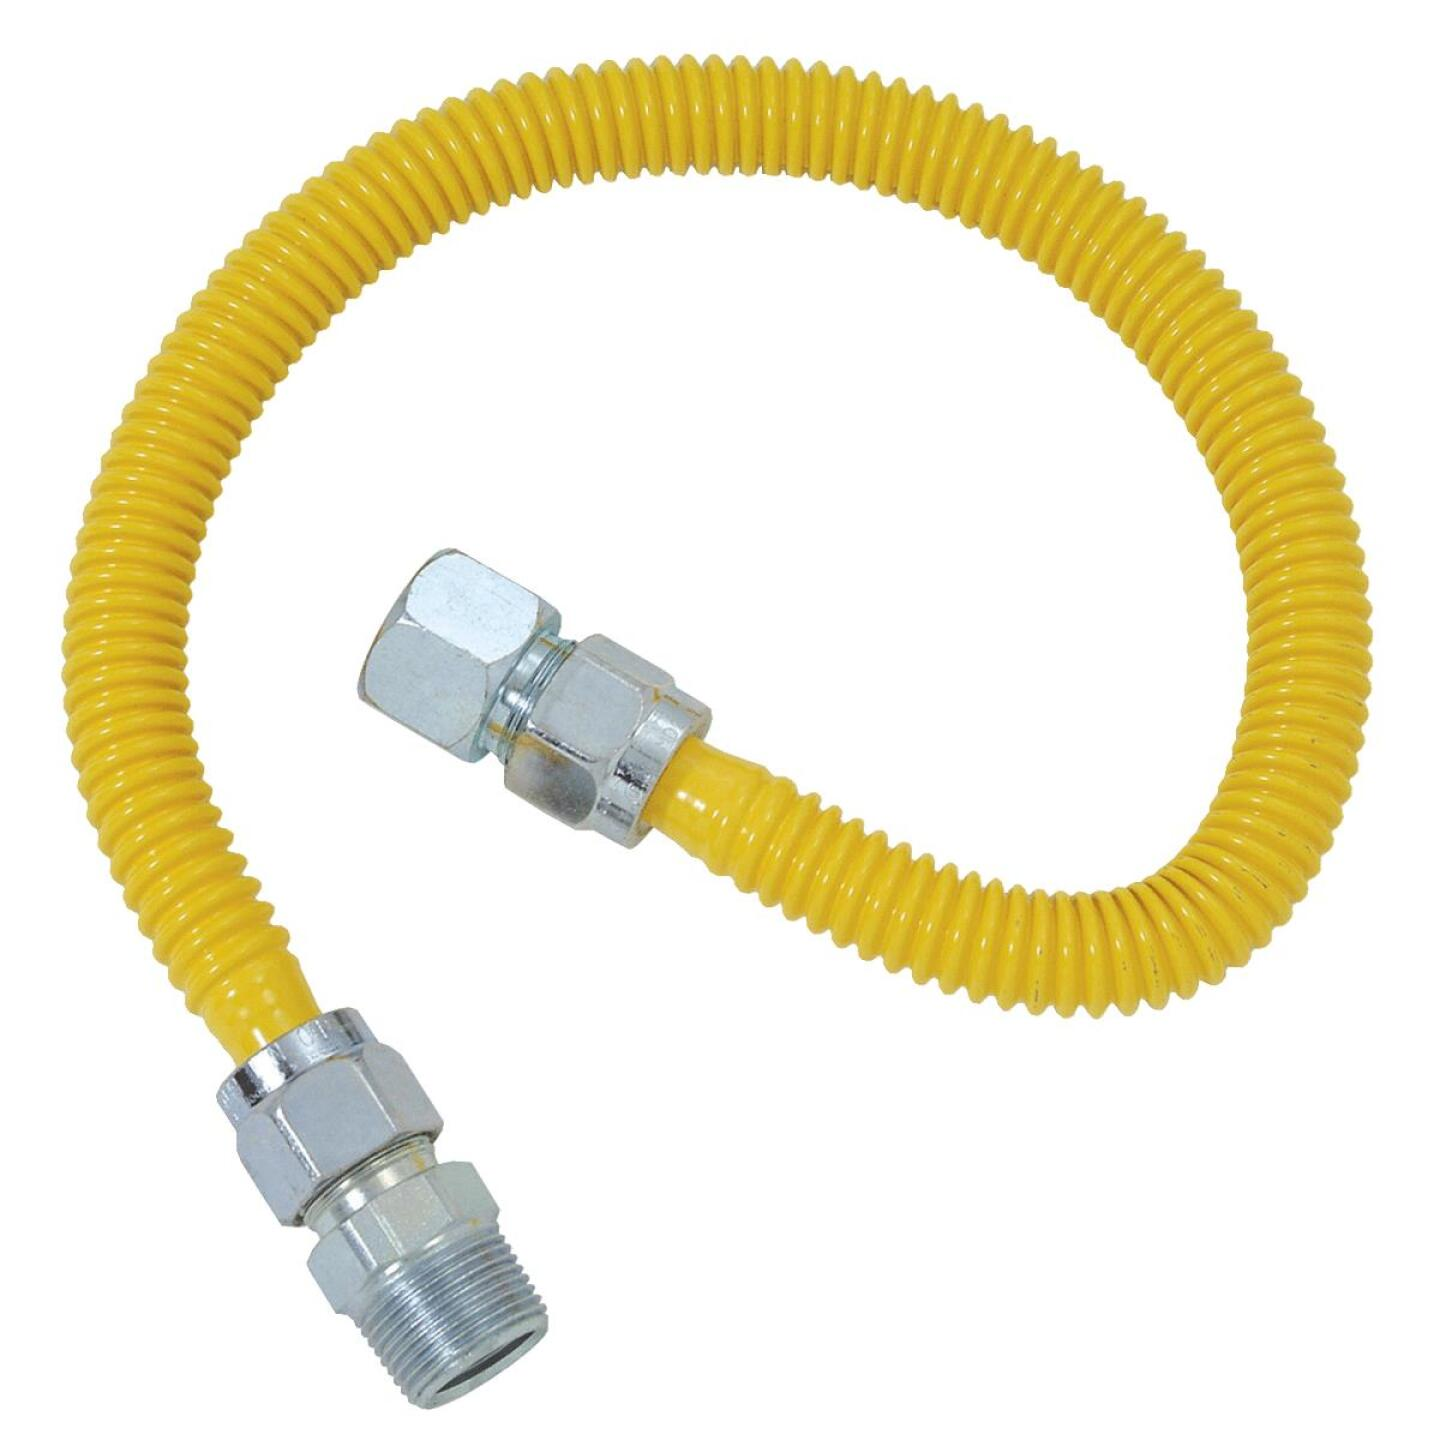 BrassCraft ProCoat 5/8 In. x 1/2 In. x 48 In. Gas Connector Image 1